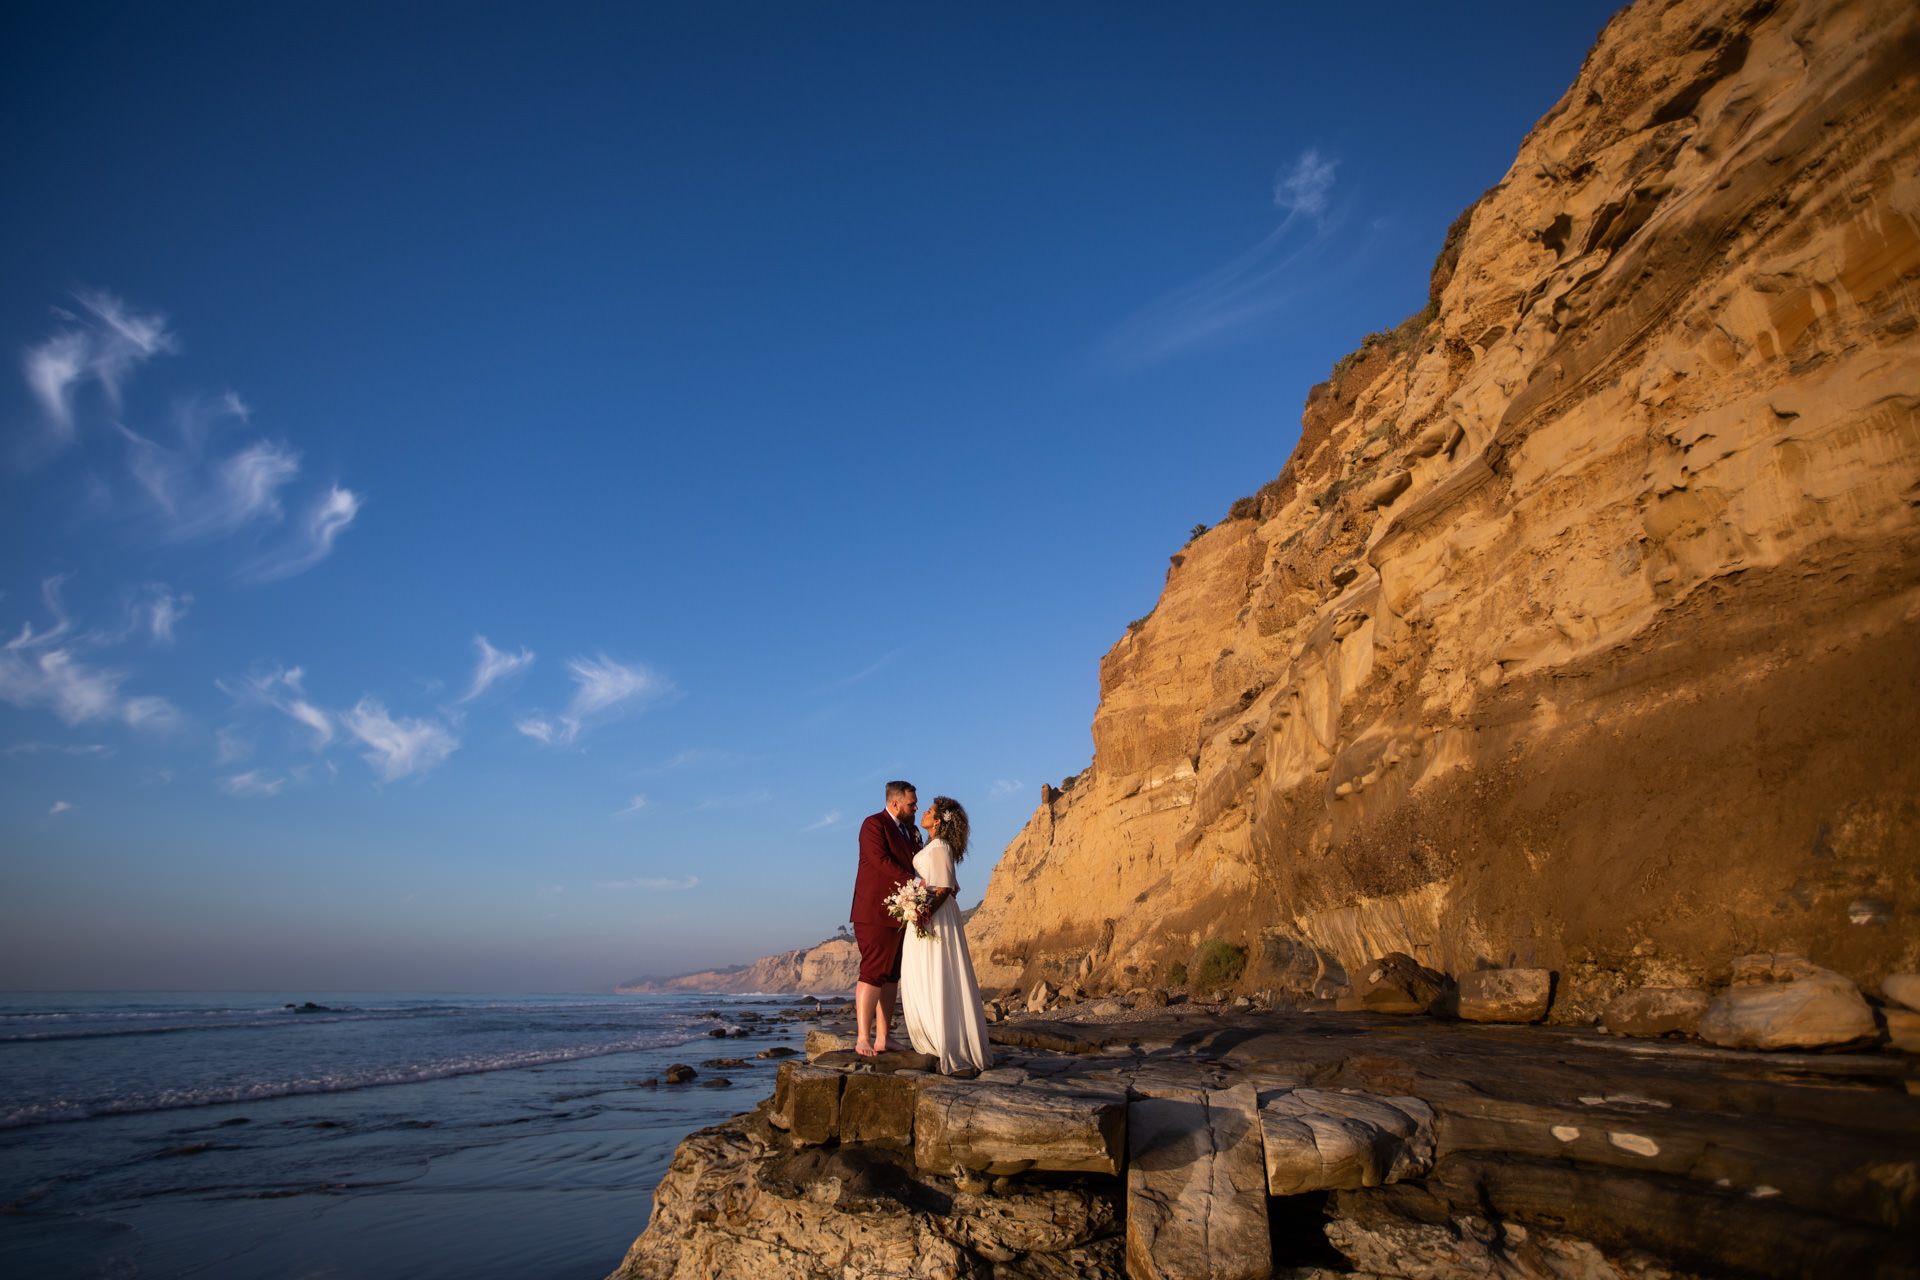 Gerusa and Eric La Jolla Beach Wedding Faces Photography